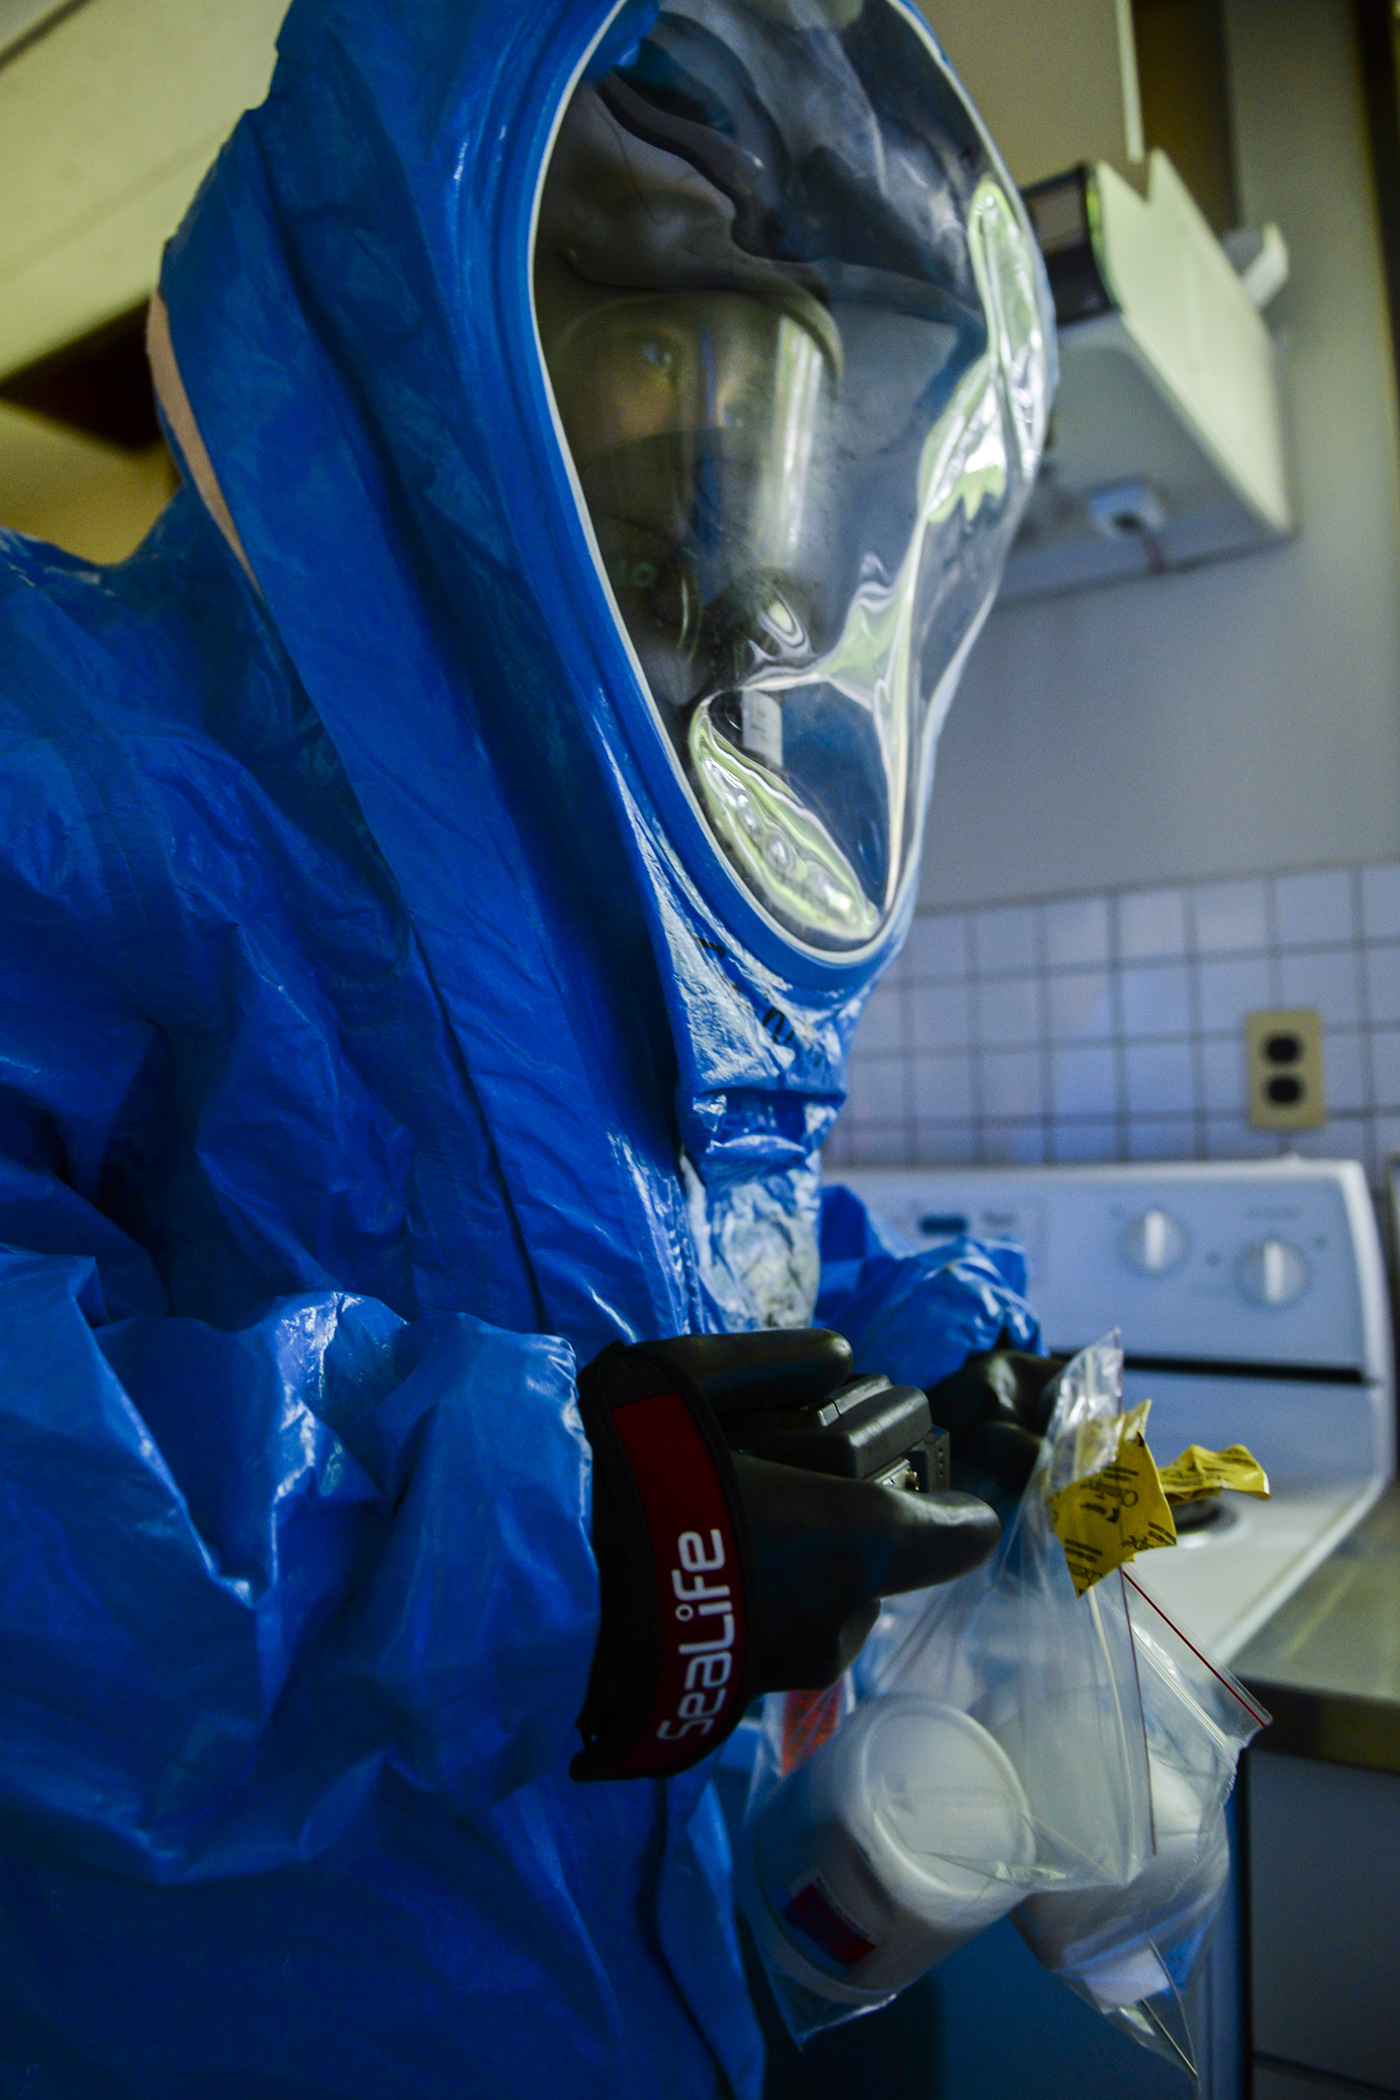 Senior Airman Vonfernan Carios, 374th Aerospace Medicine Squadron bioenvironmental engineering technician, carries samples taken from the scene of a mock environmental hazard, May 6, 2015, at Yokota Air Base, Japan. Airmen from the 374th Civil Engineering Squadron and the 374 AMDS worked together to respond during an emergency response training exercise. (U.S. Air Force photo by Airman 1st Class Elizabeth Baker/Released)